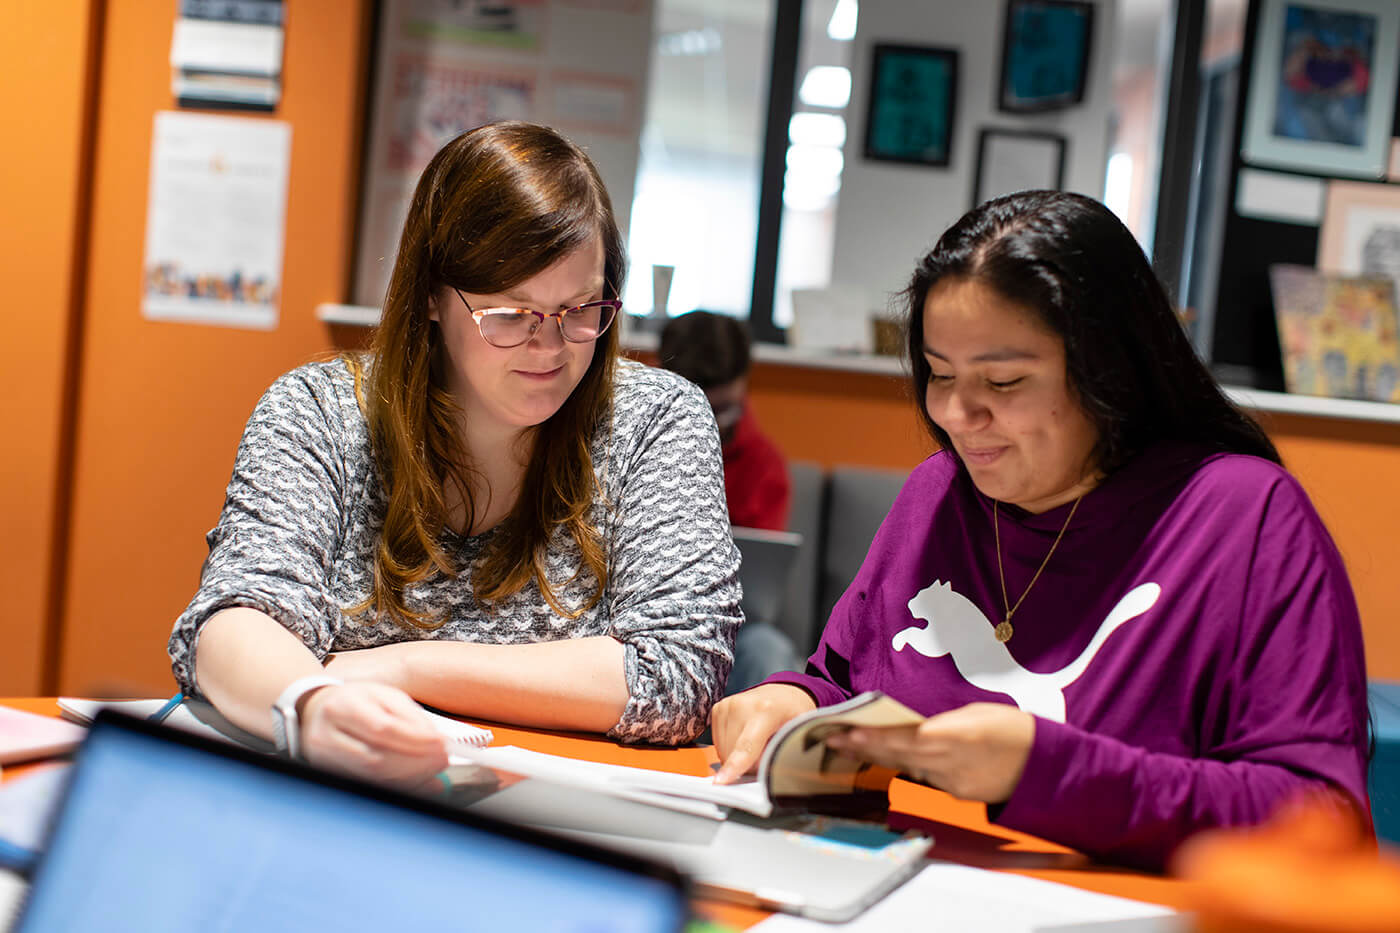 A student and a mentor sit together at a table reviewing a book at Quest Forward Academy Omaha.